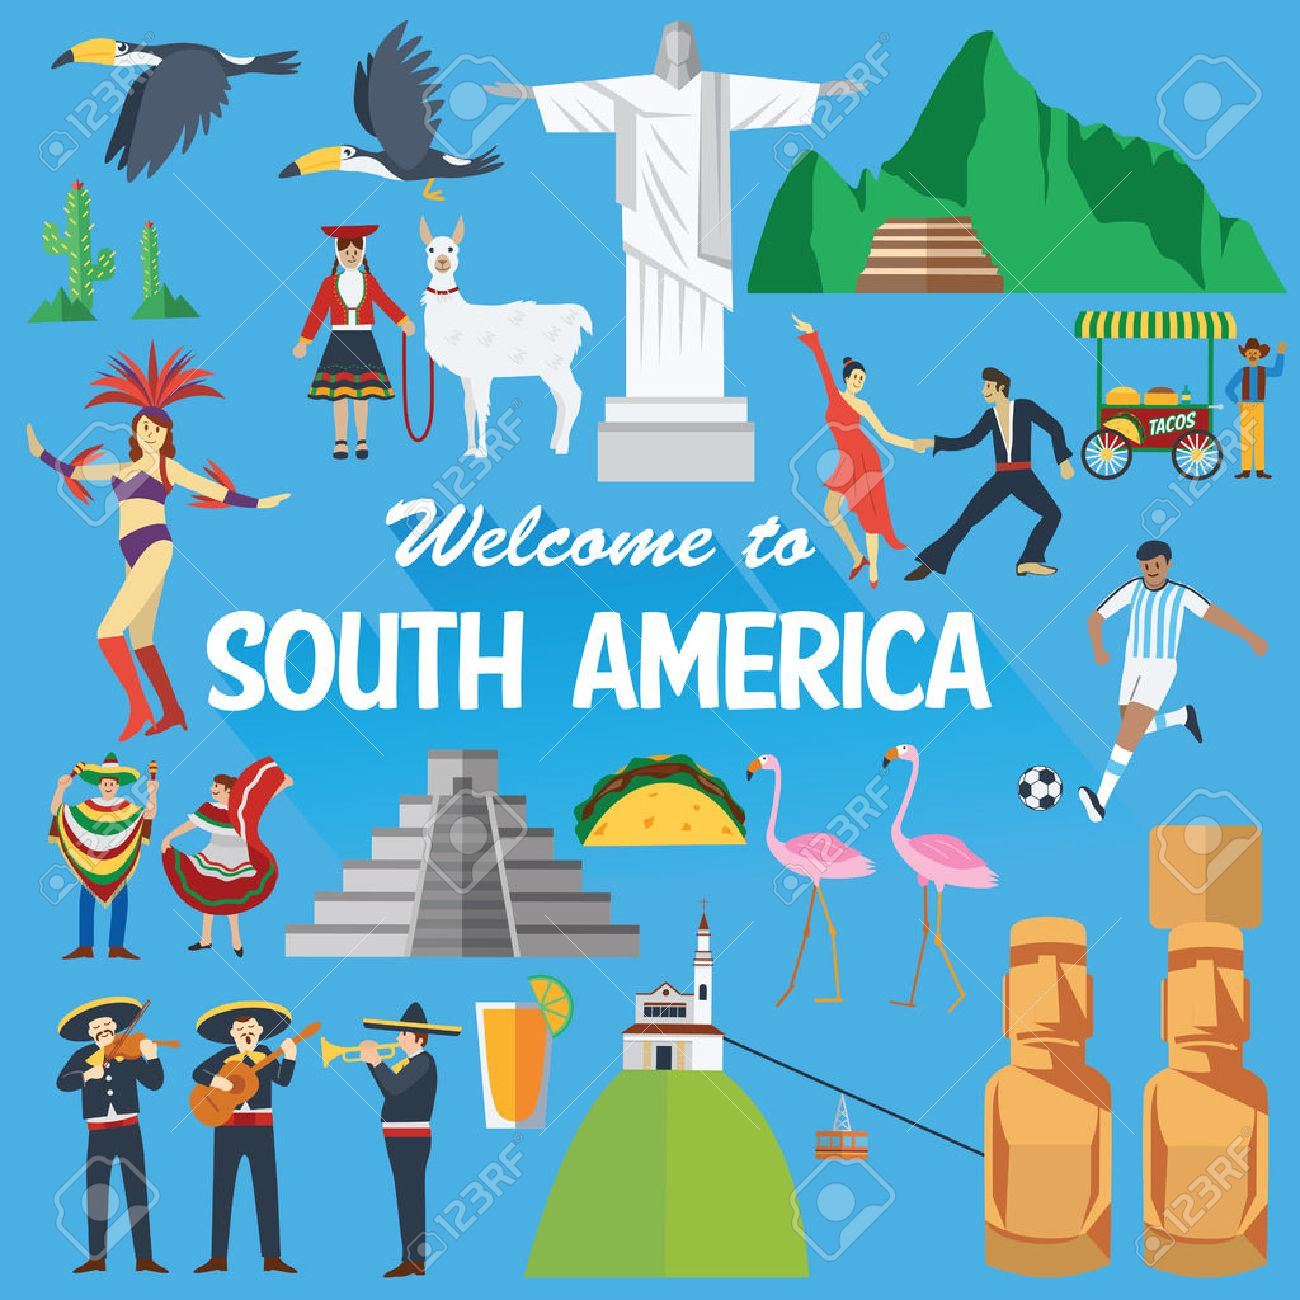 Flat design, Illustration of South America landmarks and icons - 51558180